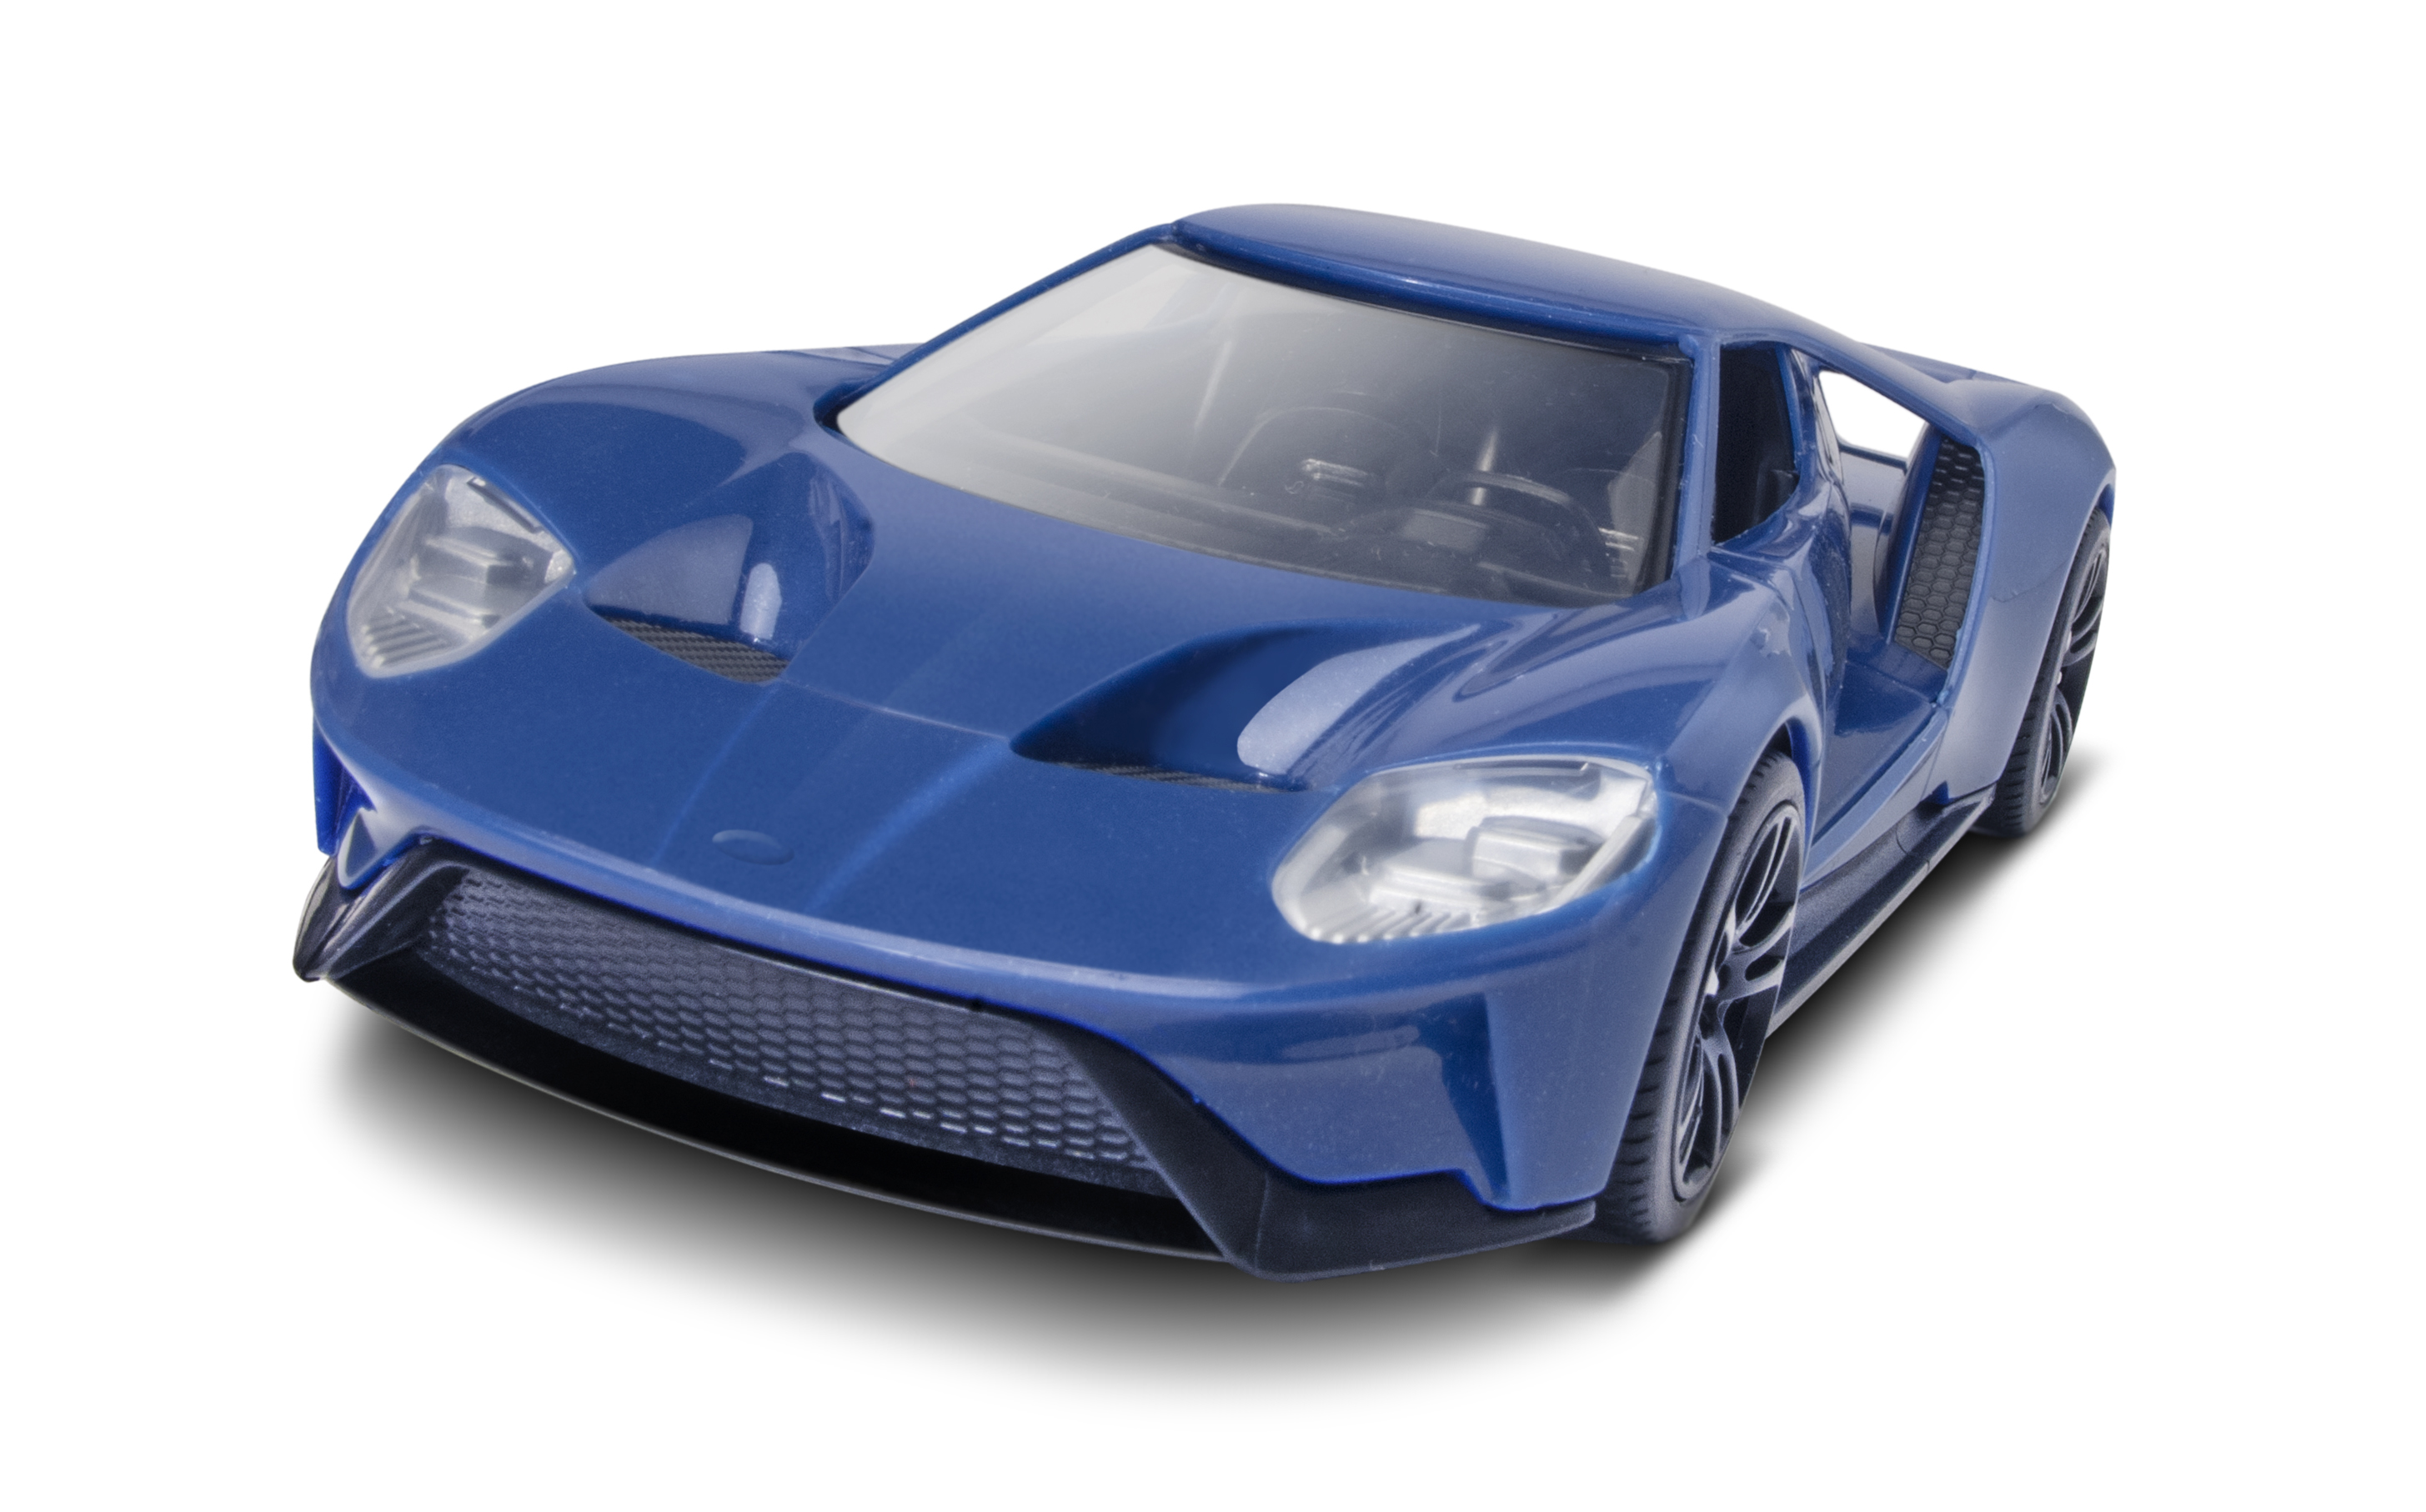 Ford Gt Snap Kits Will Be Free To Kids At Detroit Auto Show